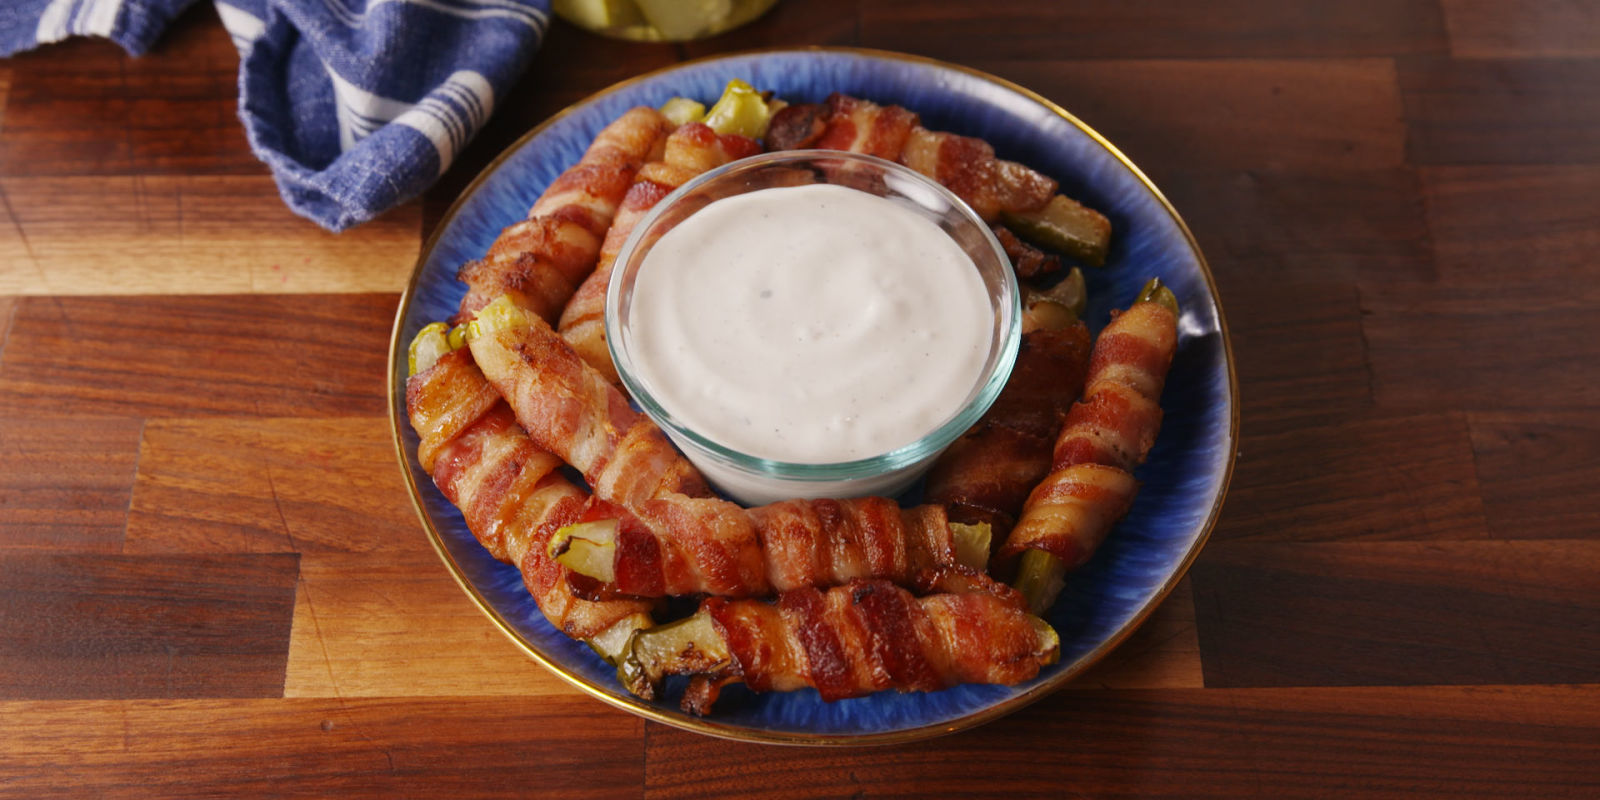 Bacon Pickle Fries Video - How To Make Bacon Pickle Fries ...